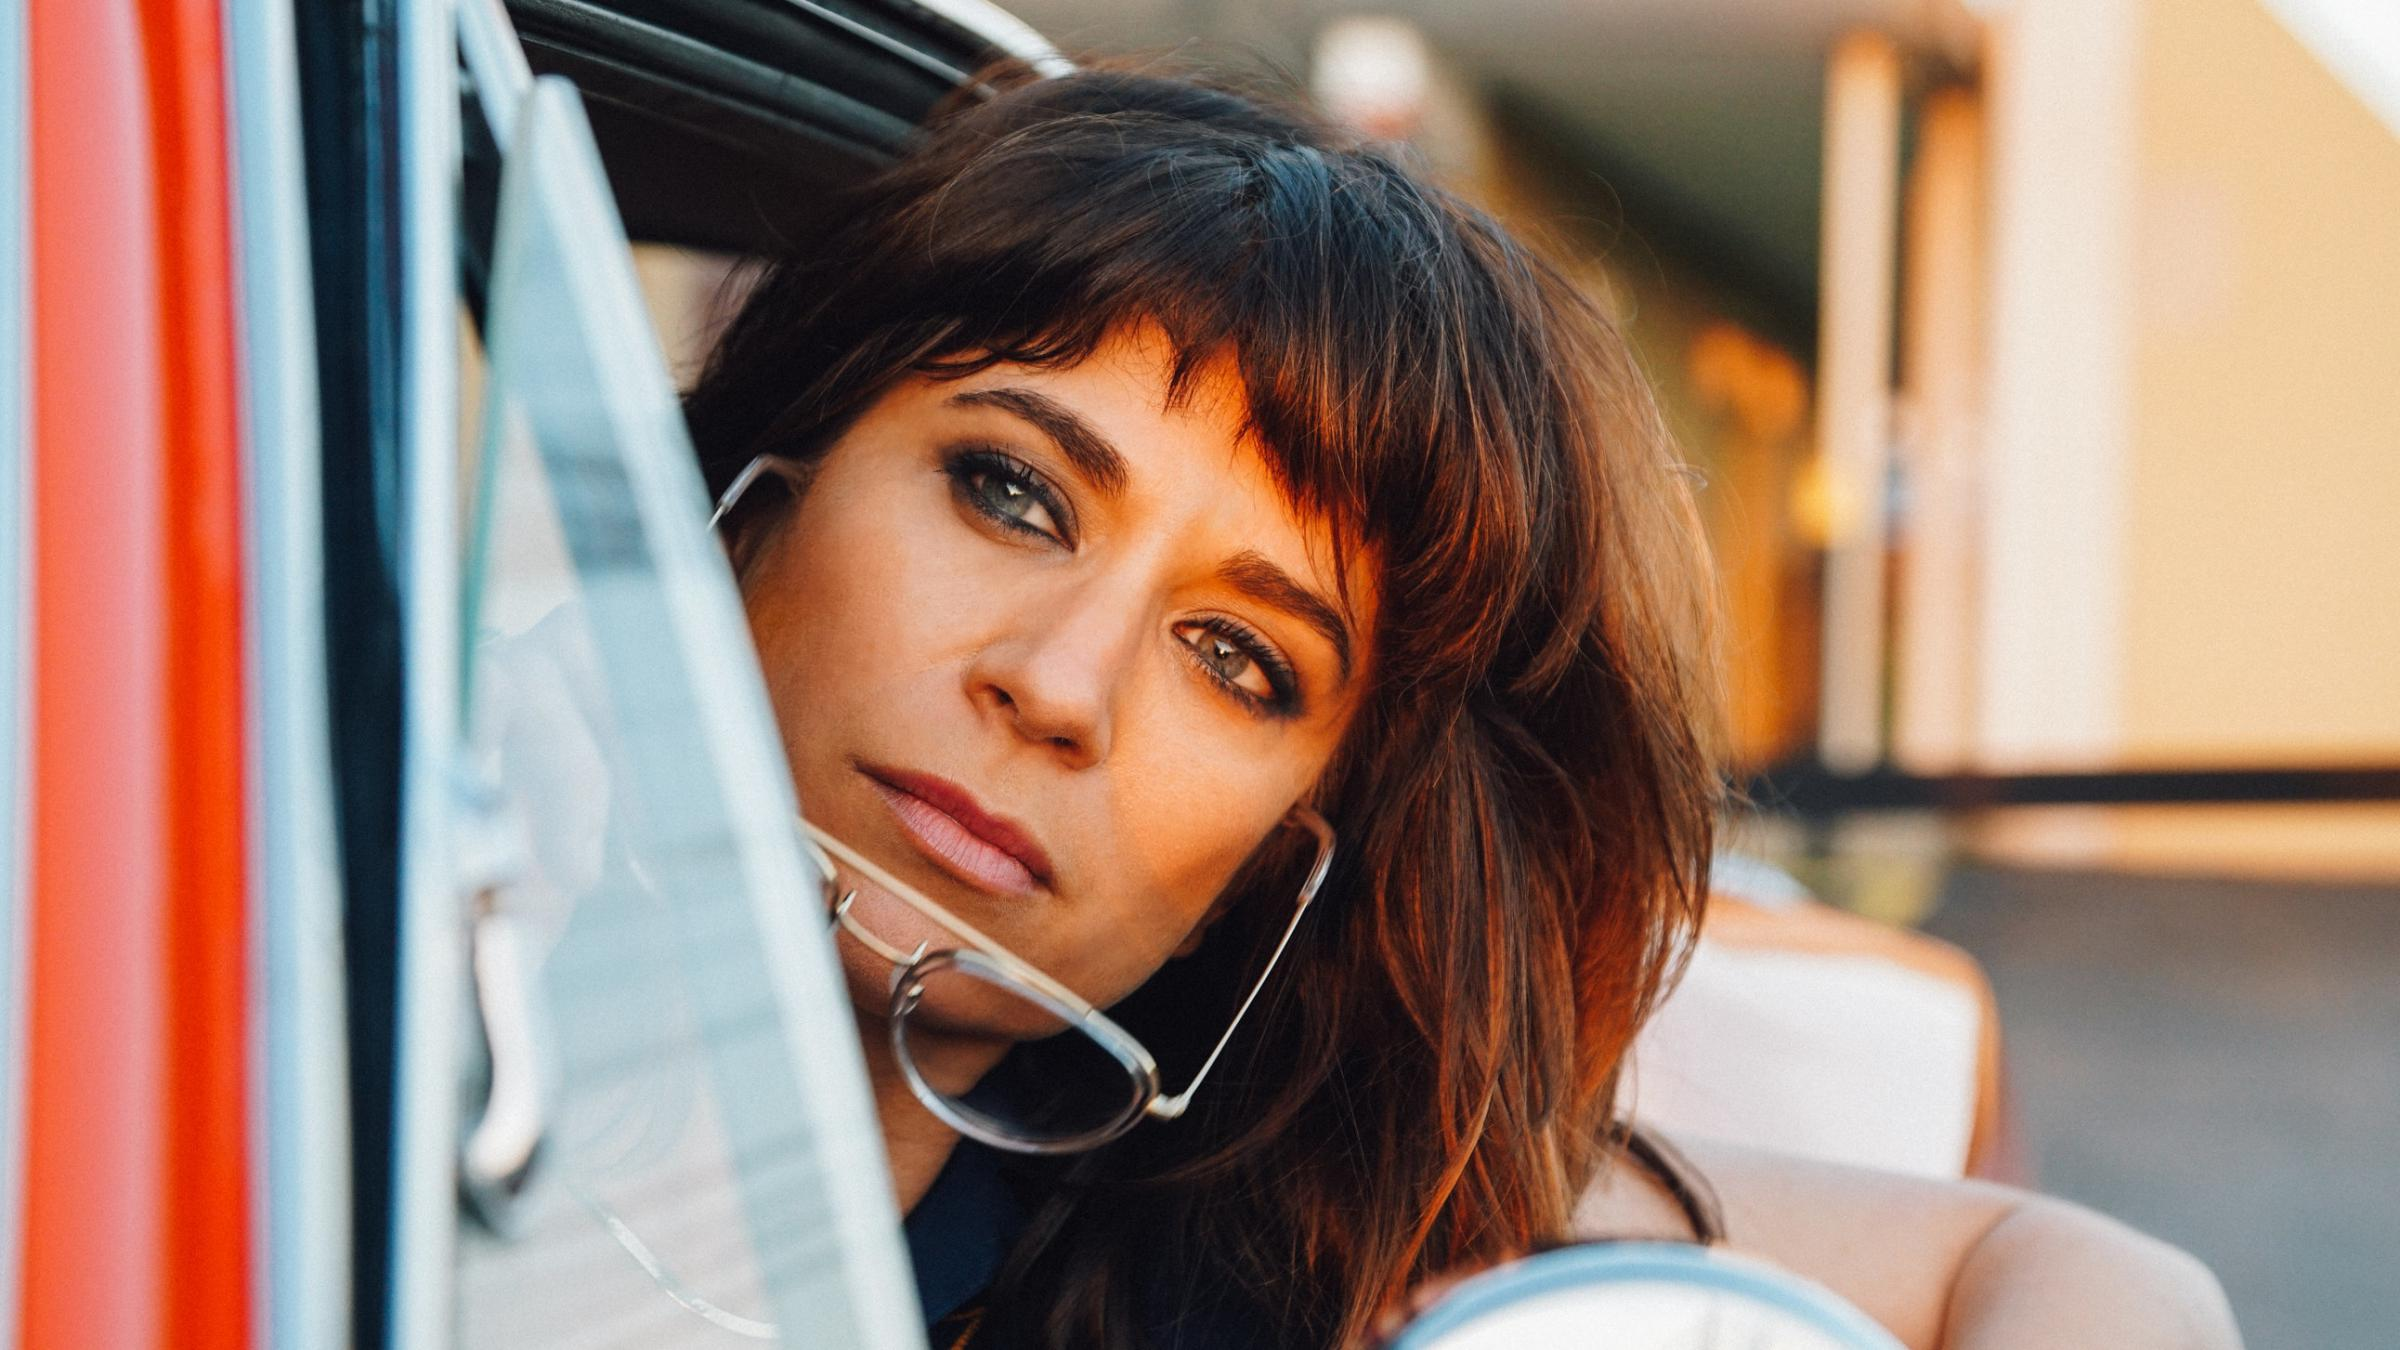 Real Roots Cafe: Nicole Atkins – Italian Ice